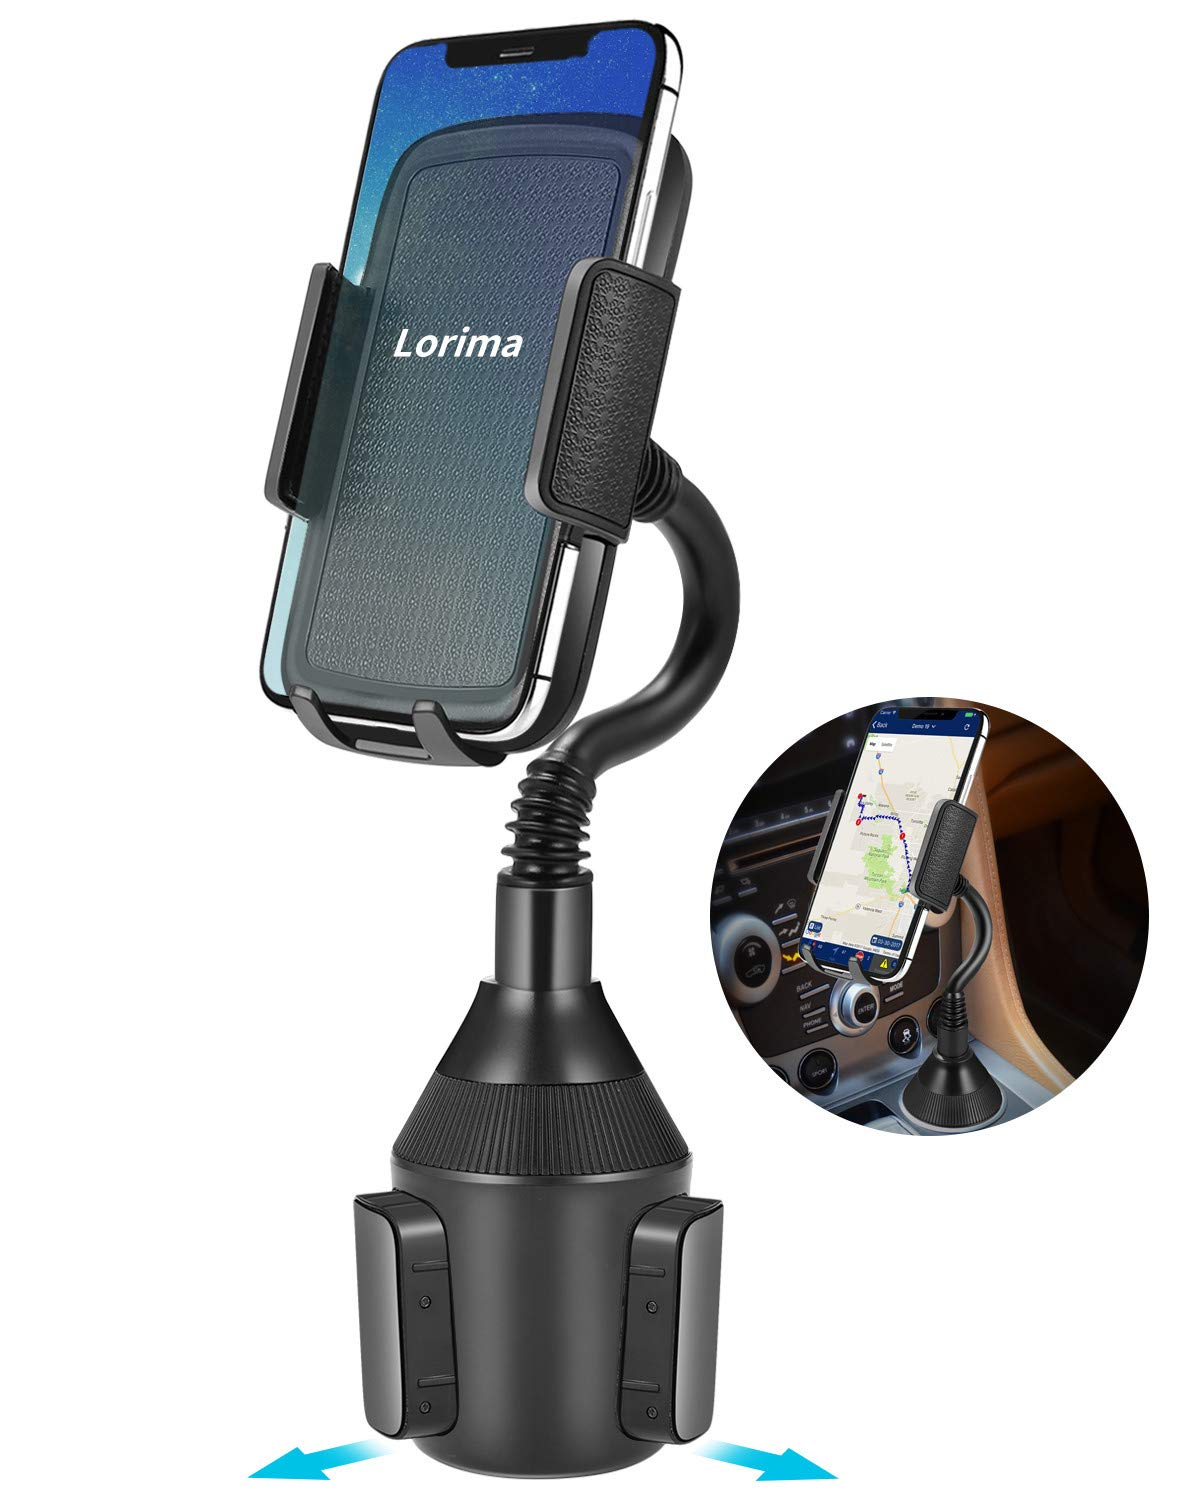 Lorima Car Cup Holder Phone Mount with a Longer Flexible Neck for Cell Phones iPhone Xs/XS Max/X/8/7 Plus/Galaxy